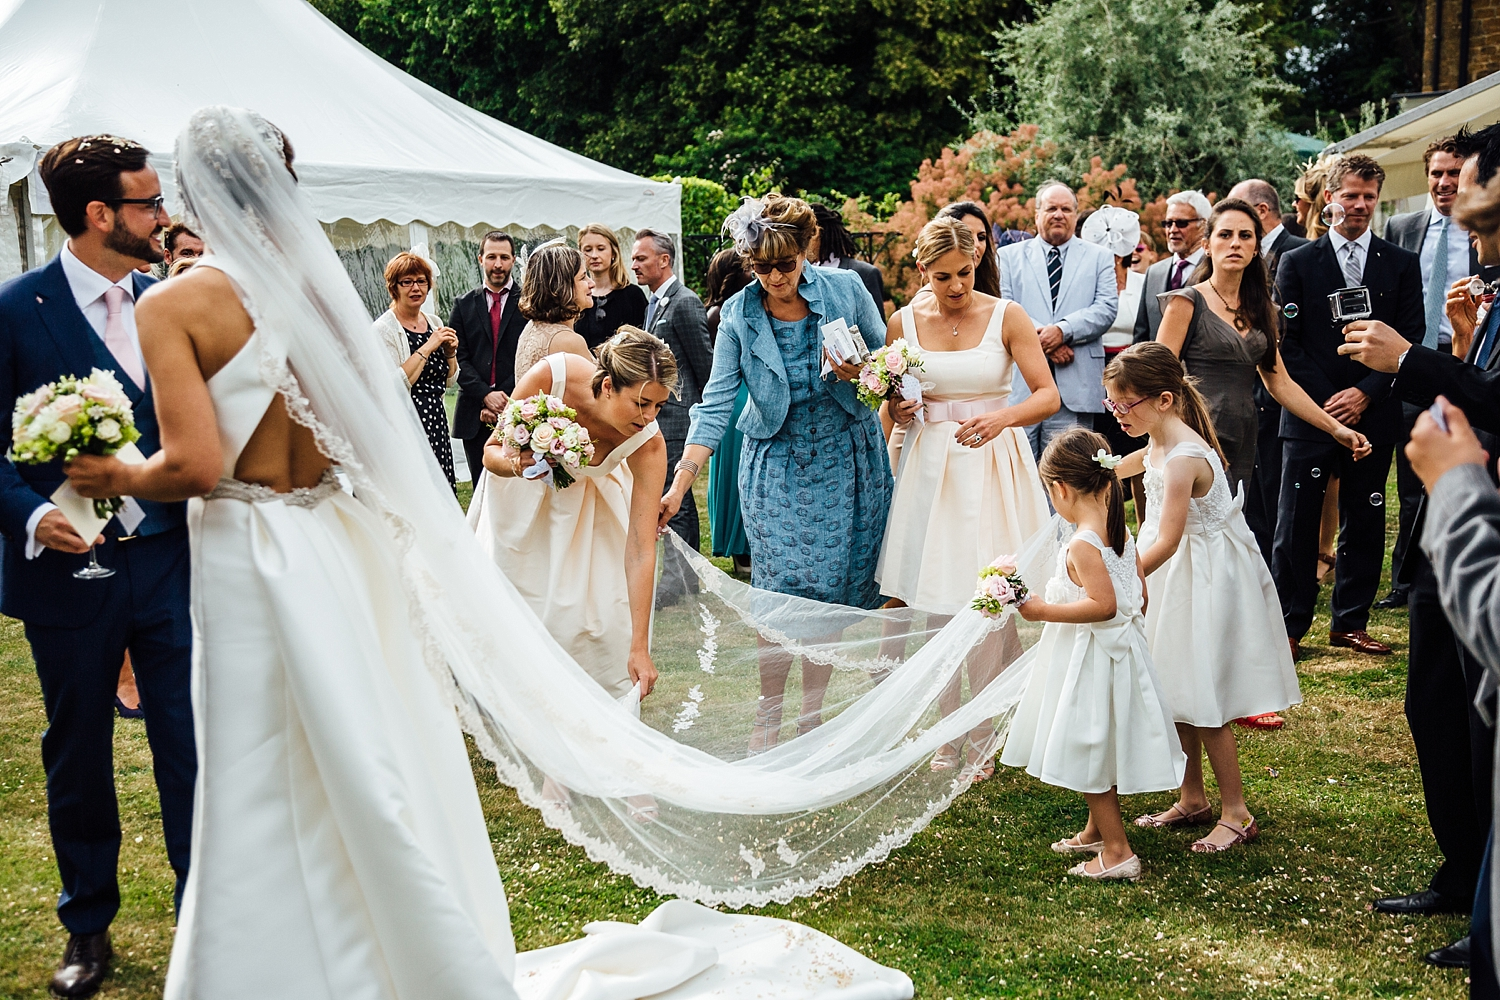 alexvictor-blog-natural-fun-relaxed-documentary-charlotte-jopling-wedding-photography-northamptonshire-home-garden-country-summer-35.jpg